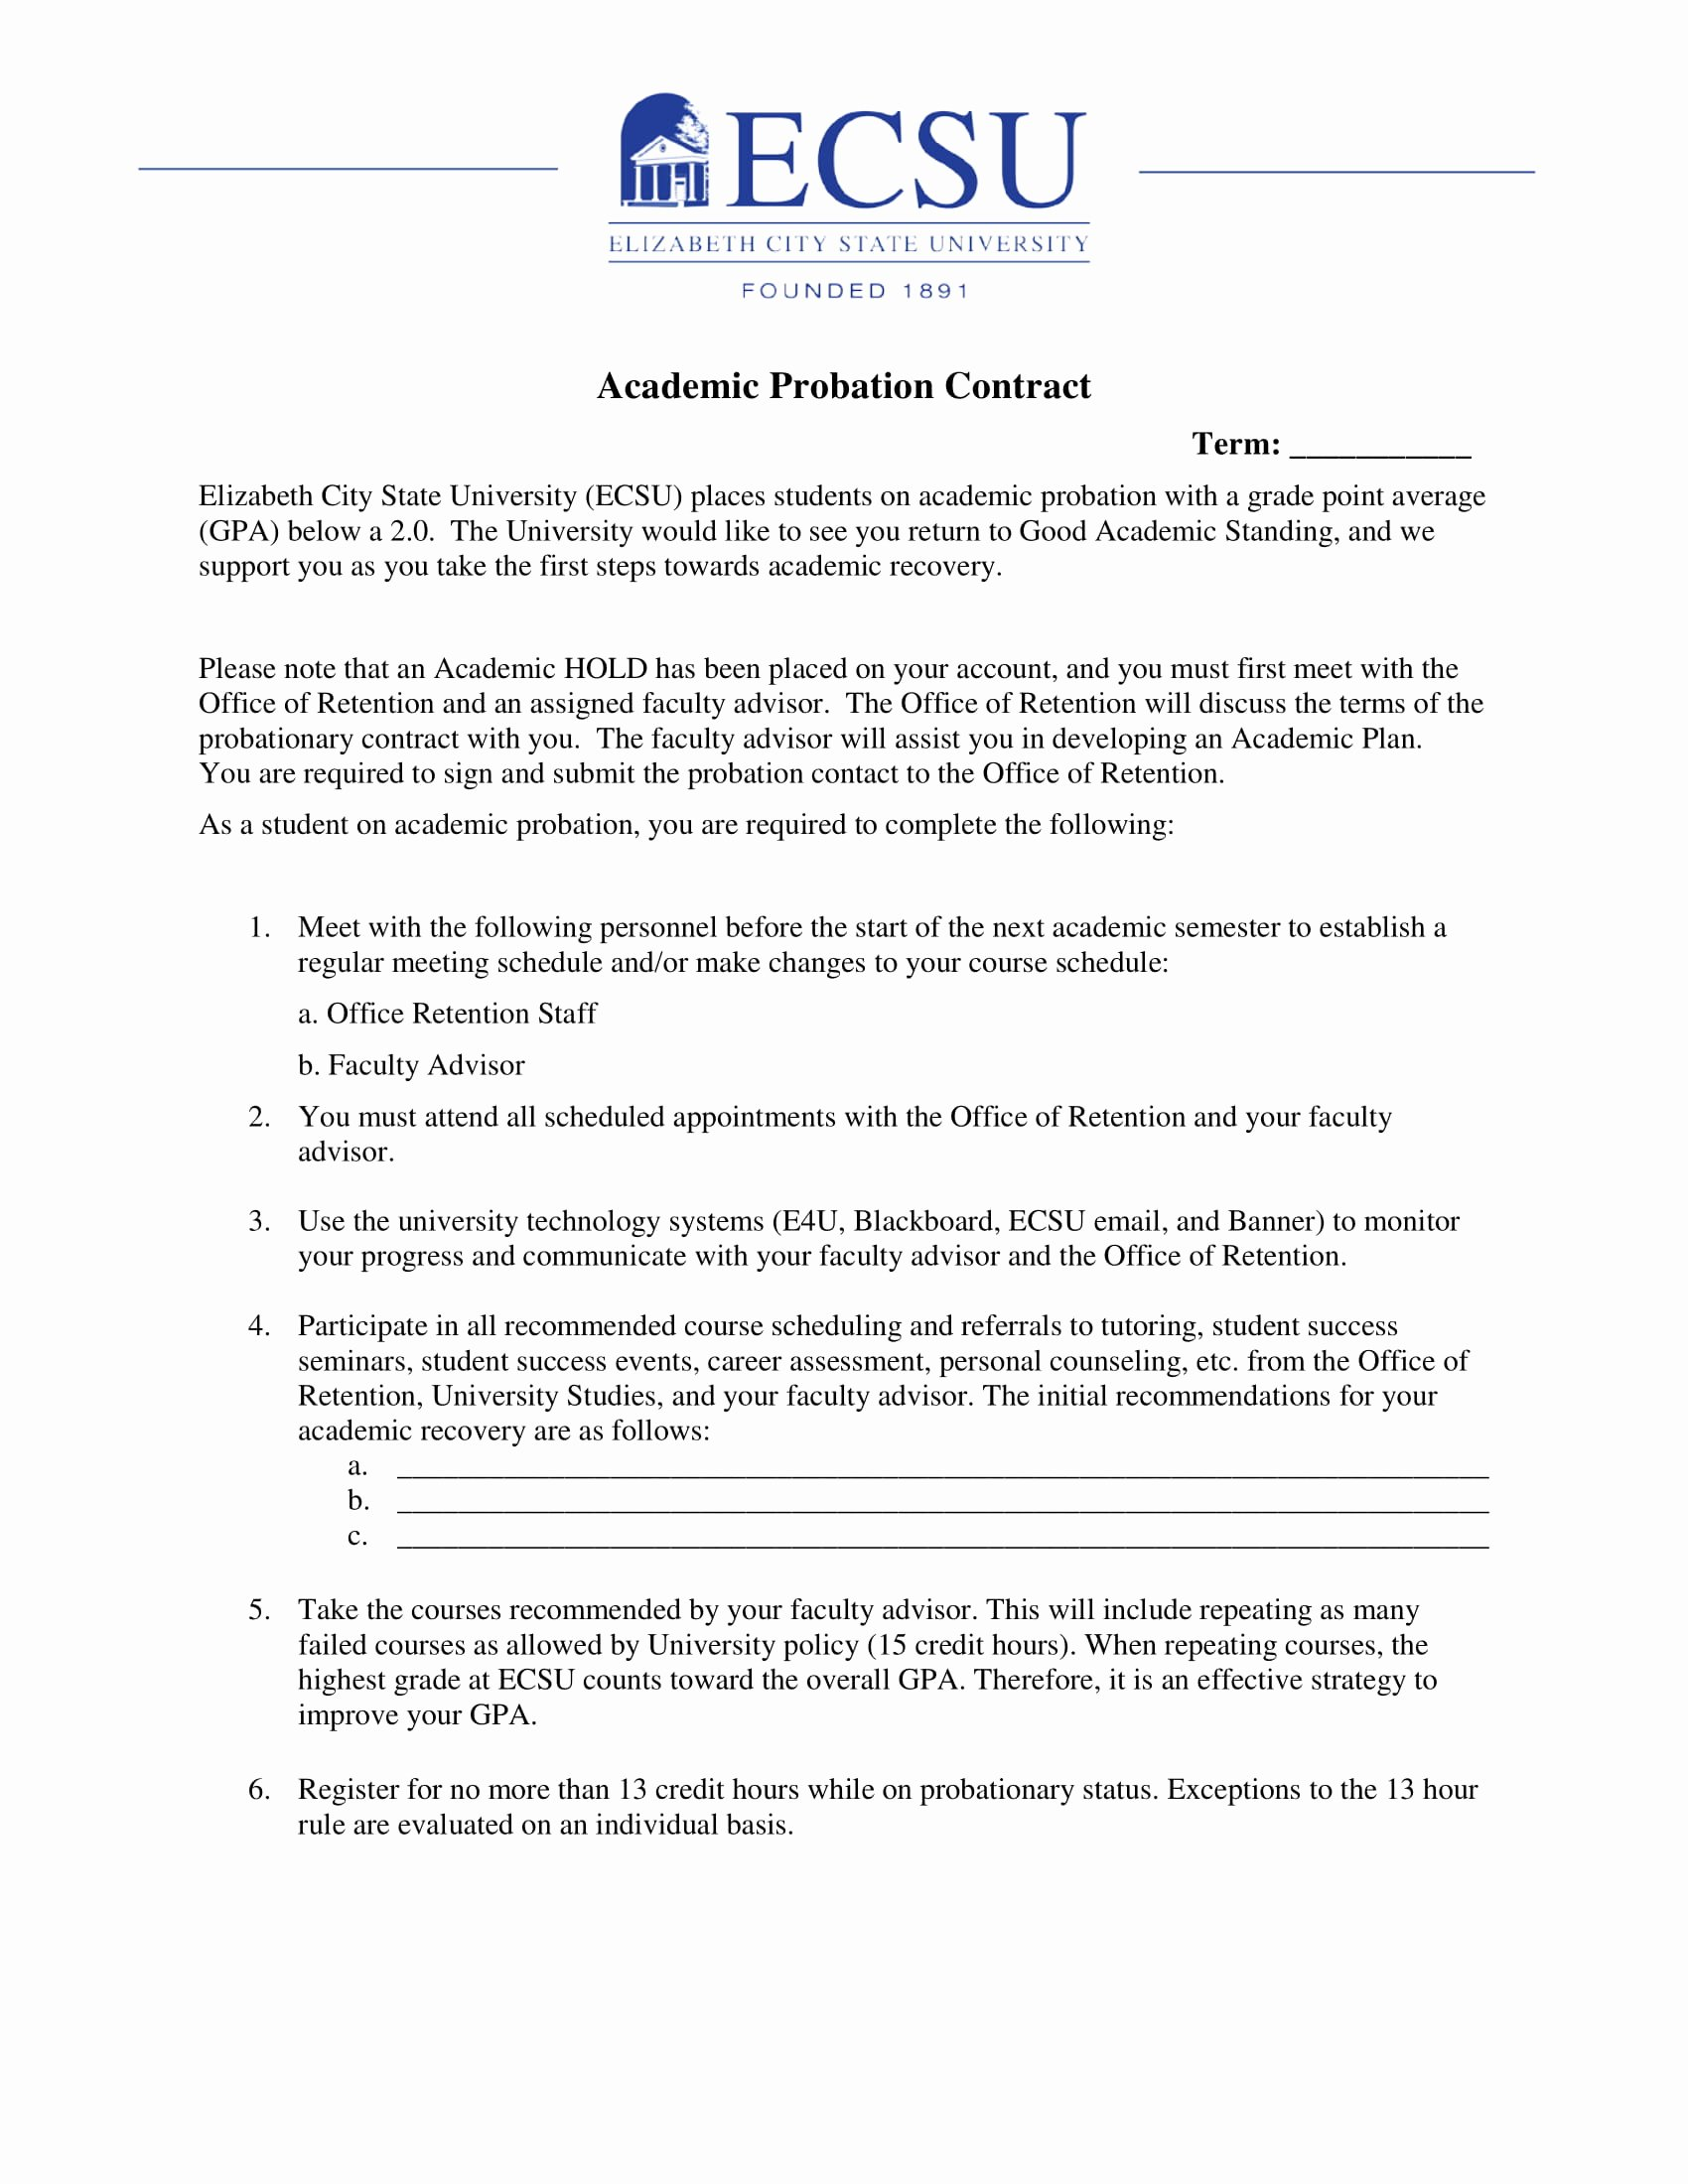 Student Academic Contract Template Luxury 9 Student Academic Contract Template Examples Pdf